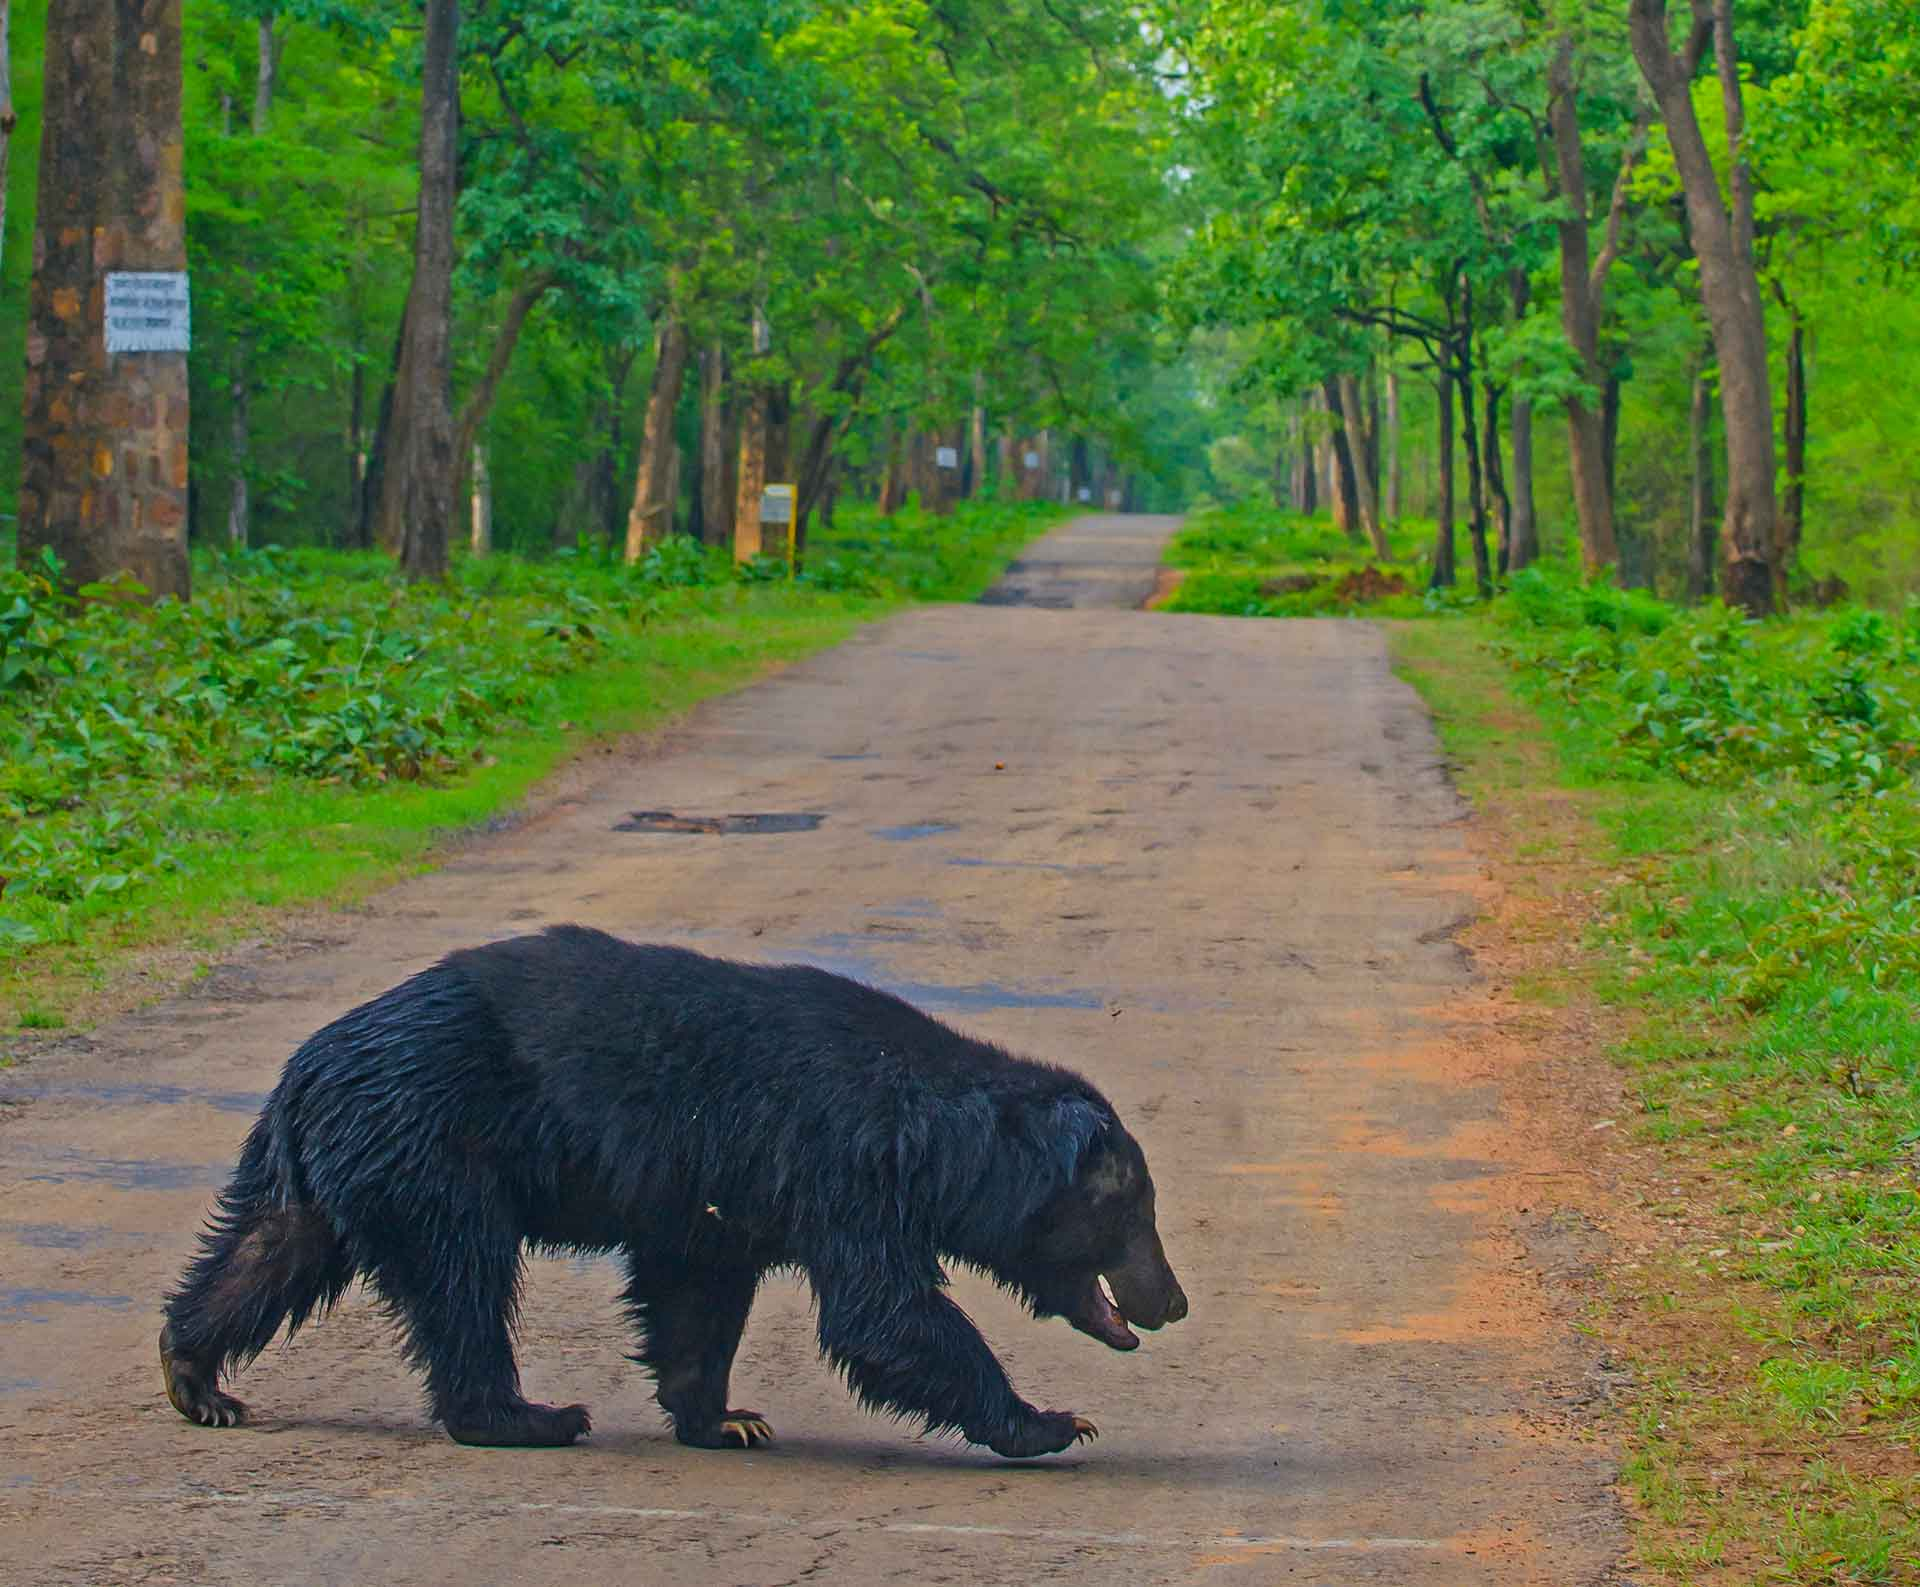 """Sloth bears have many physiological adaptations that are suited to eating insects. They have a strong sense of smell, long claws to dig, and the ability to close their nostrils, to ensure insects do not enter their nasal passages when they eat. In addition, they don't have front teeth, an adaptation that helps them consume insects with greater ease. """"Without front teeth getting in the way, they can suck up termites like a vacuum!"""" says the website of Wildlife SOS, an organisation that has been working with sloth bears for many years now."""